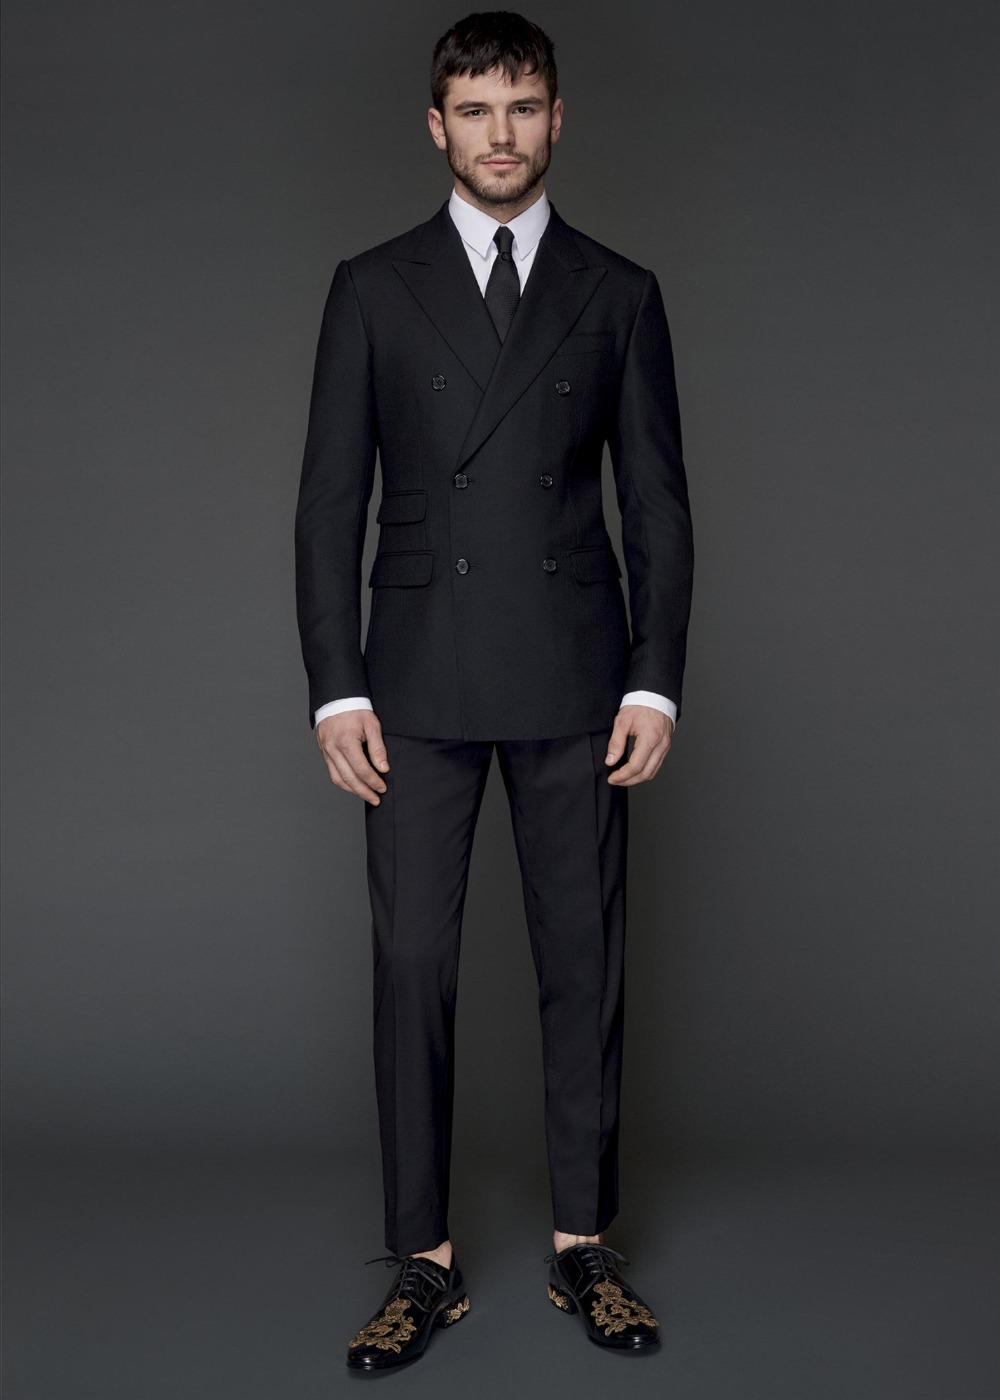 Bridegroom Suits Double Breasted Peaked Lapel Colour Black Men Tuxedos Two Pieces (Jacket+Pant) Business Clothing Costume Homme